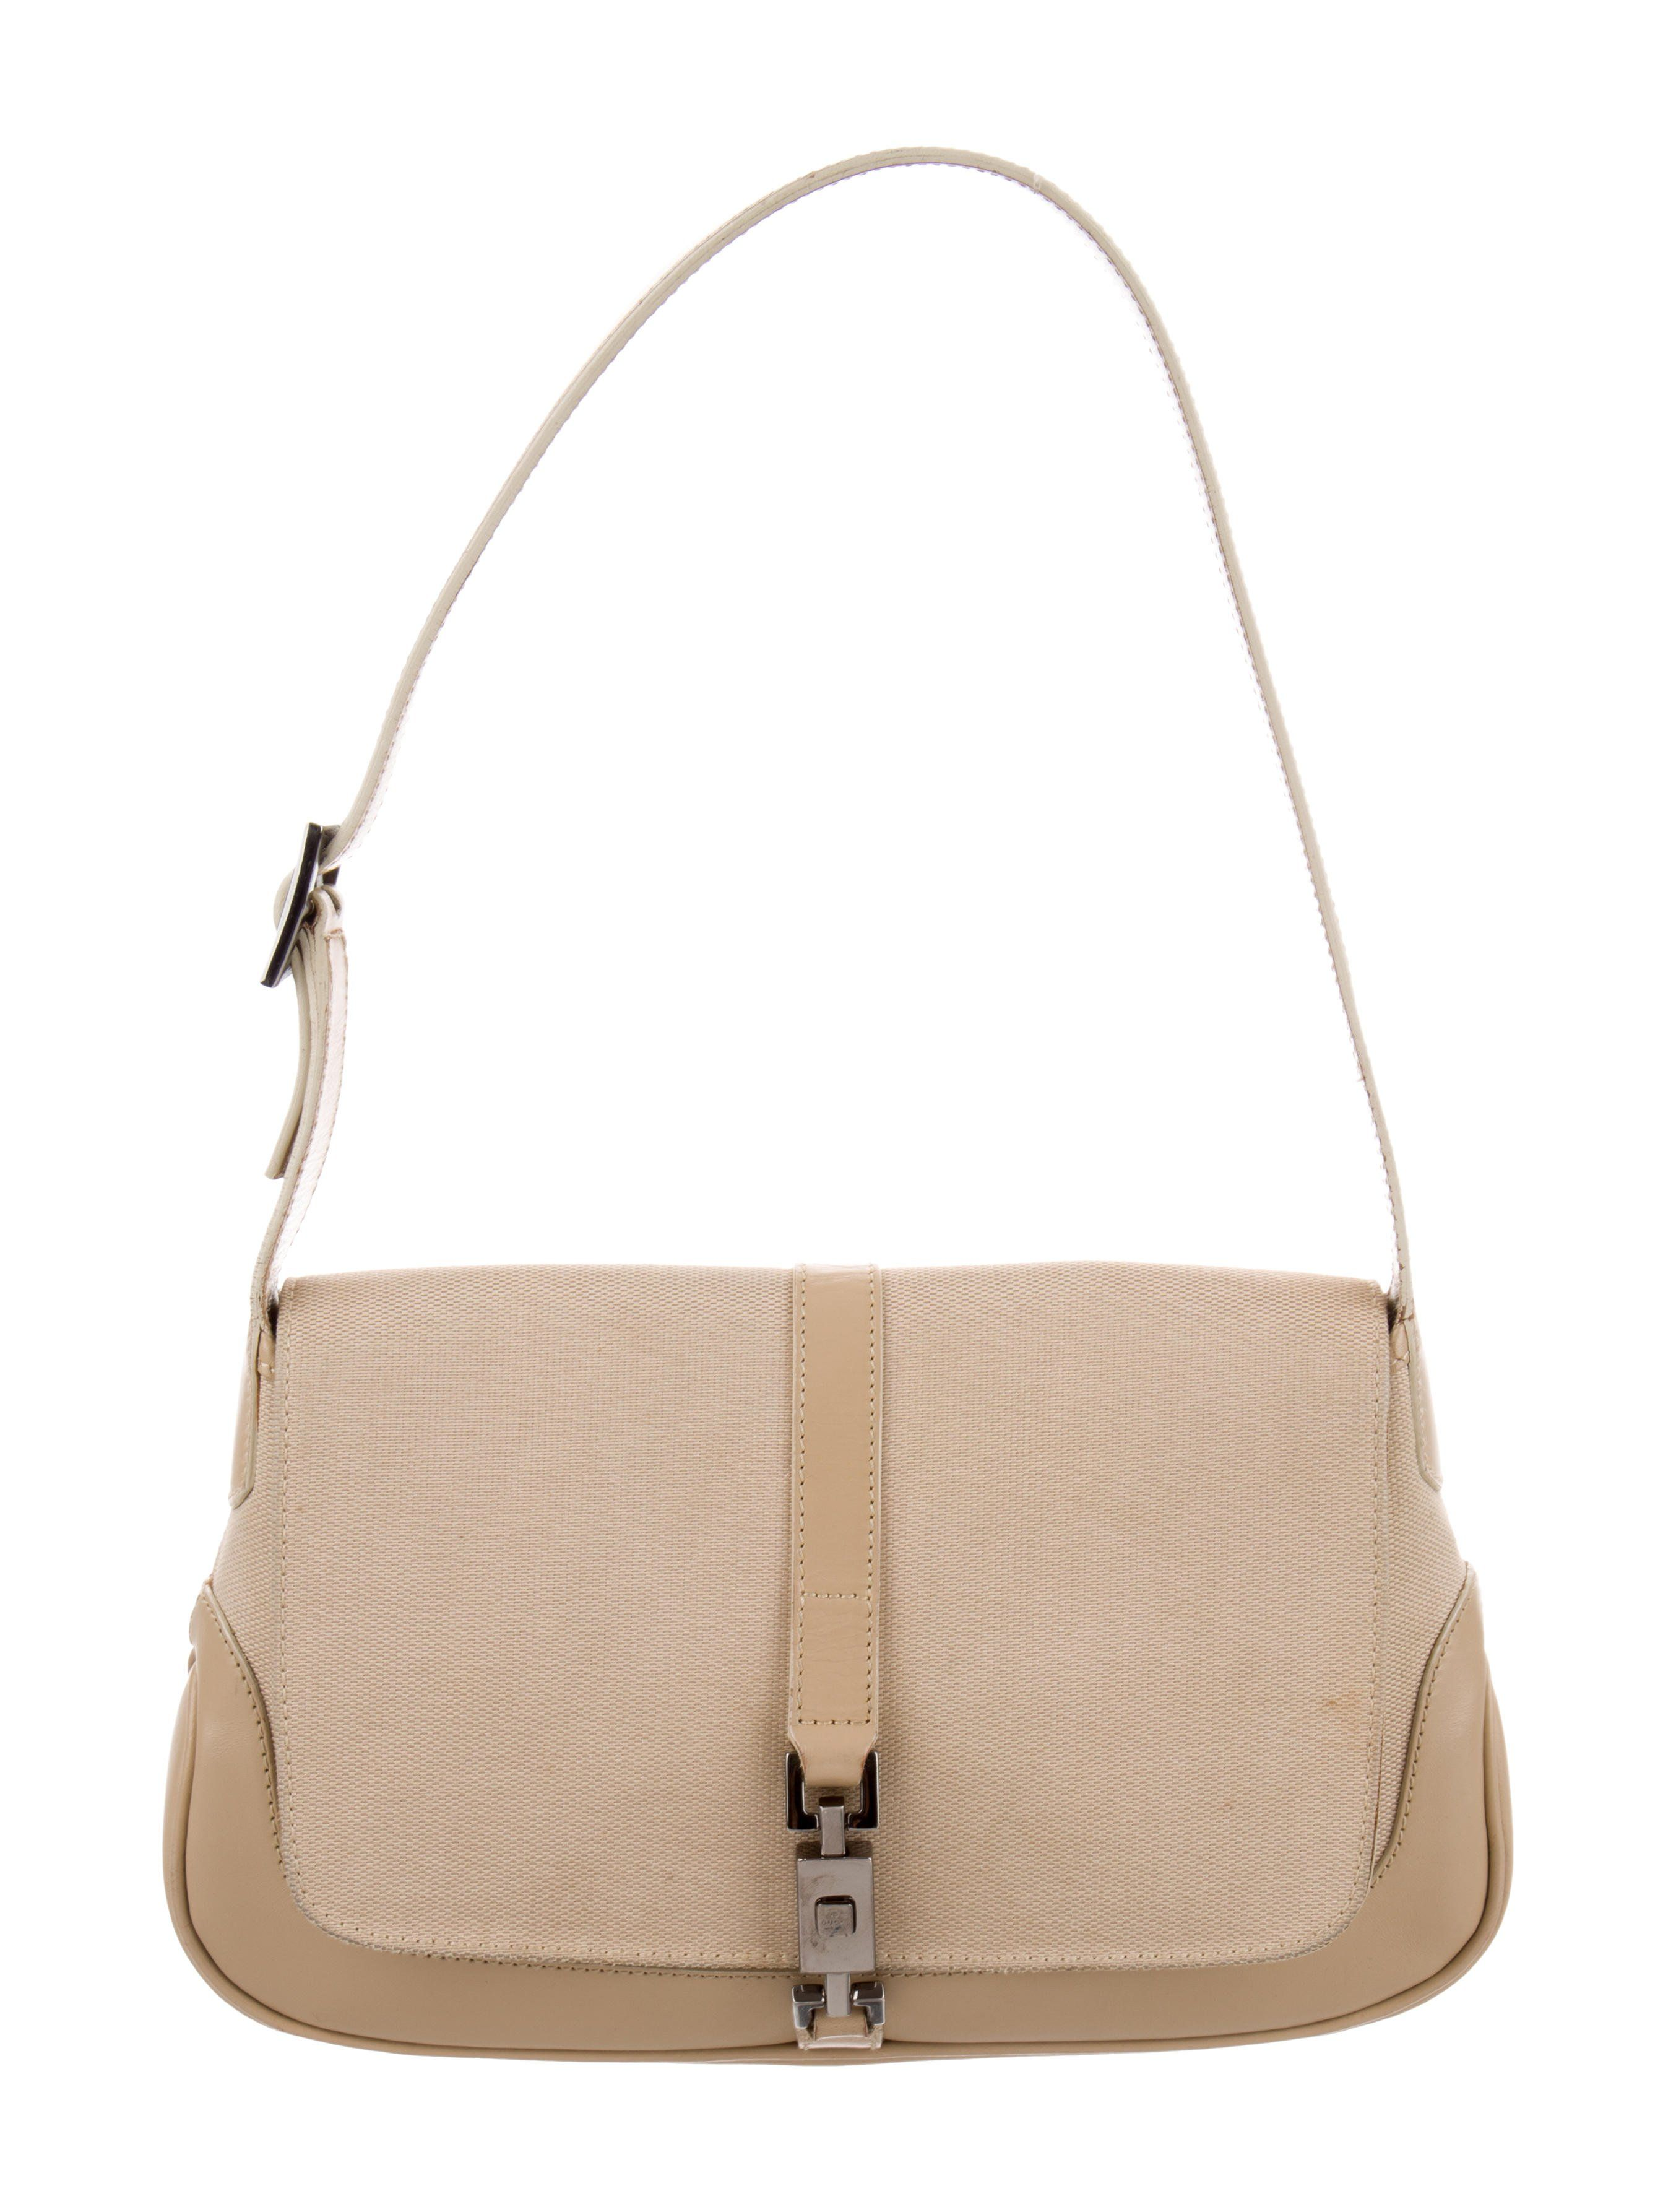 1daac8f94d9 Tan canvas Gucci Small Jackie bag with silver-tone hardware